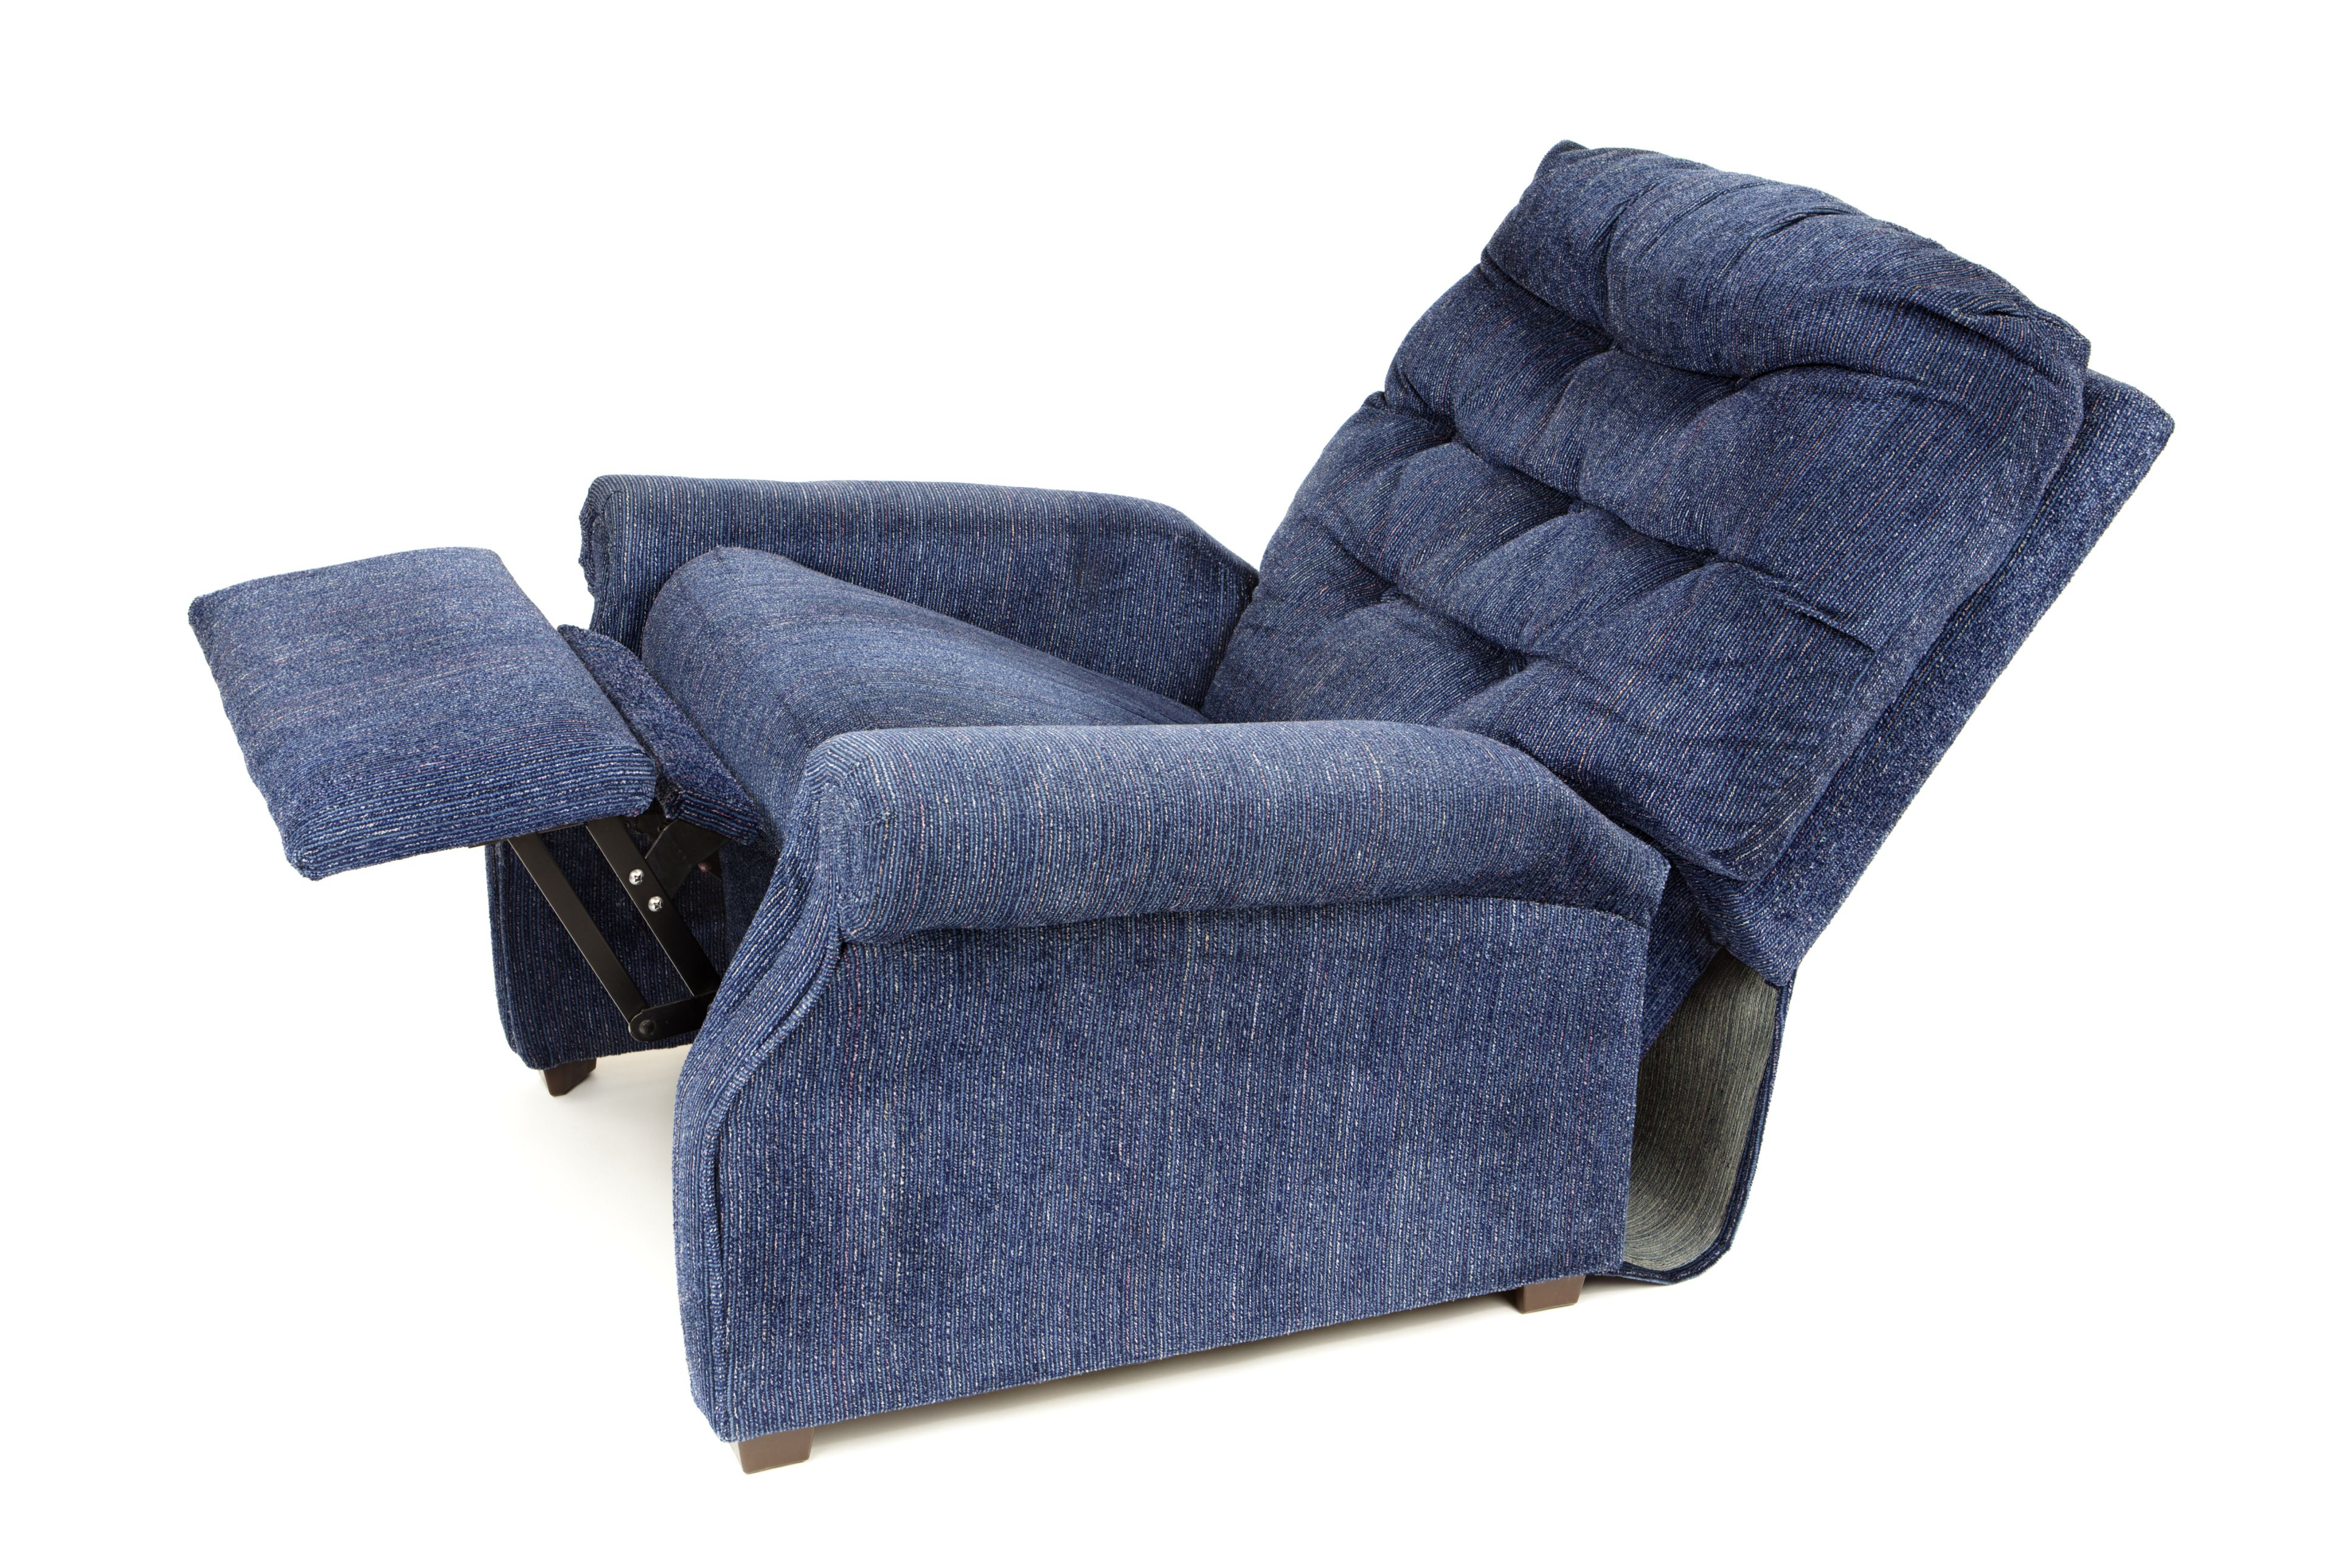 heavy duty lift chair canada east coast and barstool inc rent a recliner for your cruise hotel room or cottage